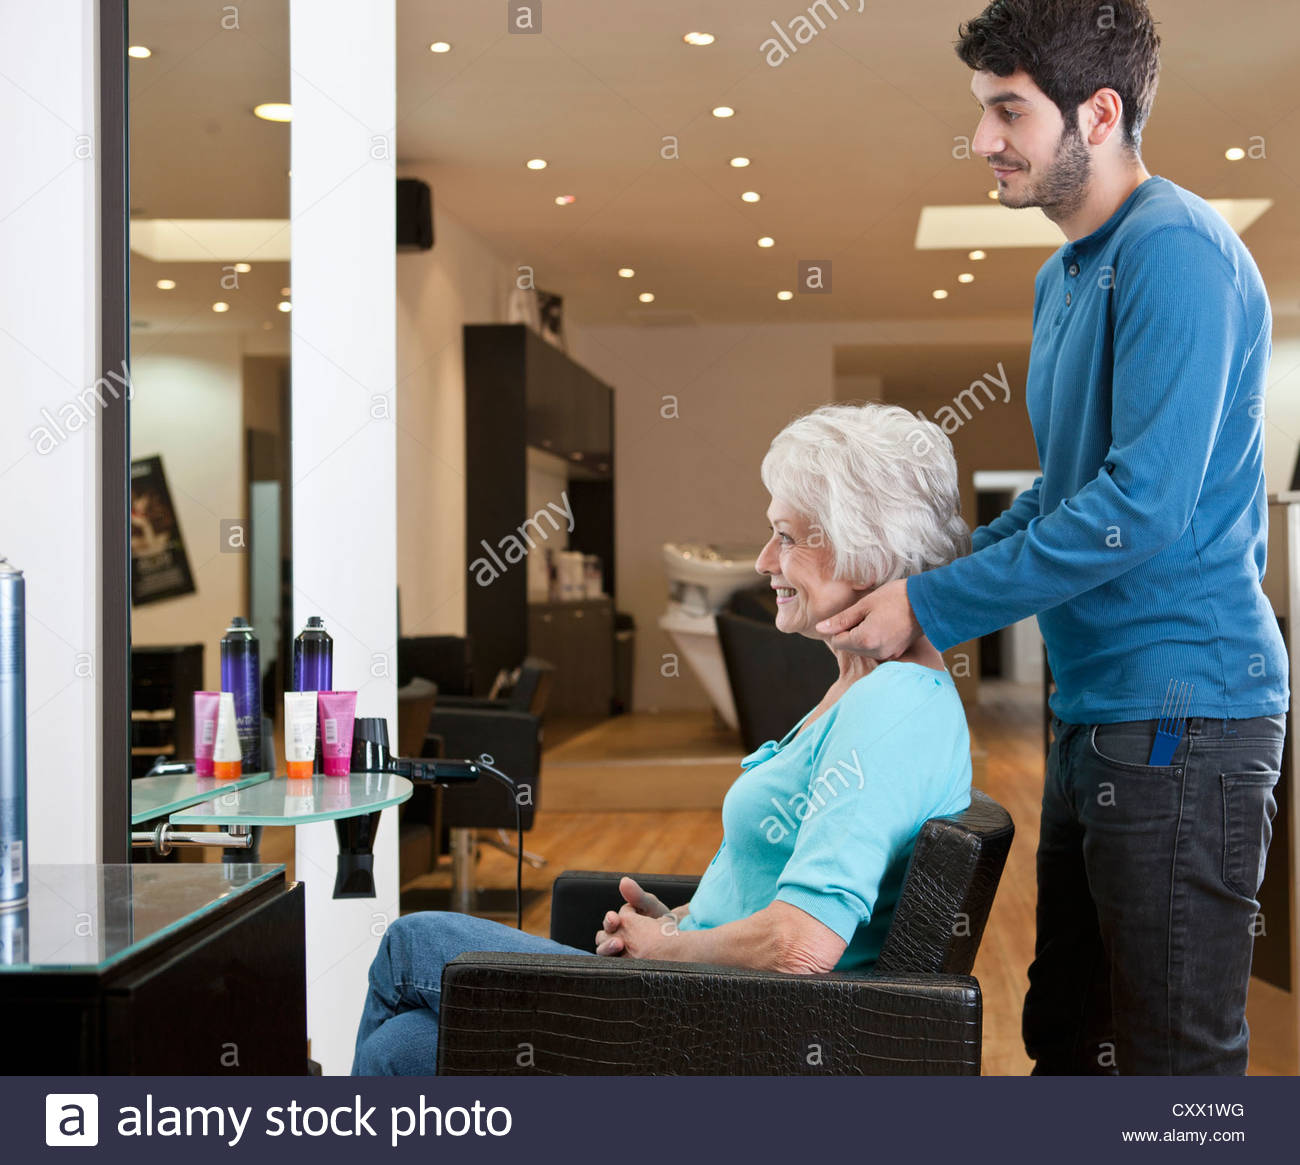 Salon Senior A Senior Woman At A Hairdressing Salon Admiring Her New